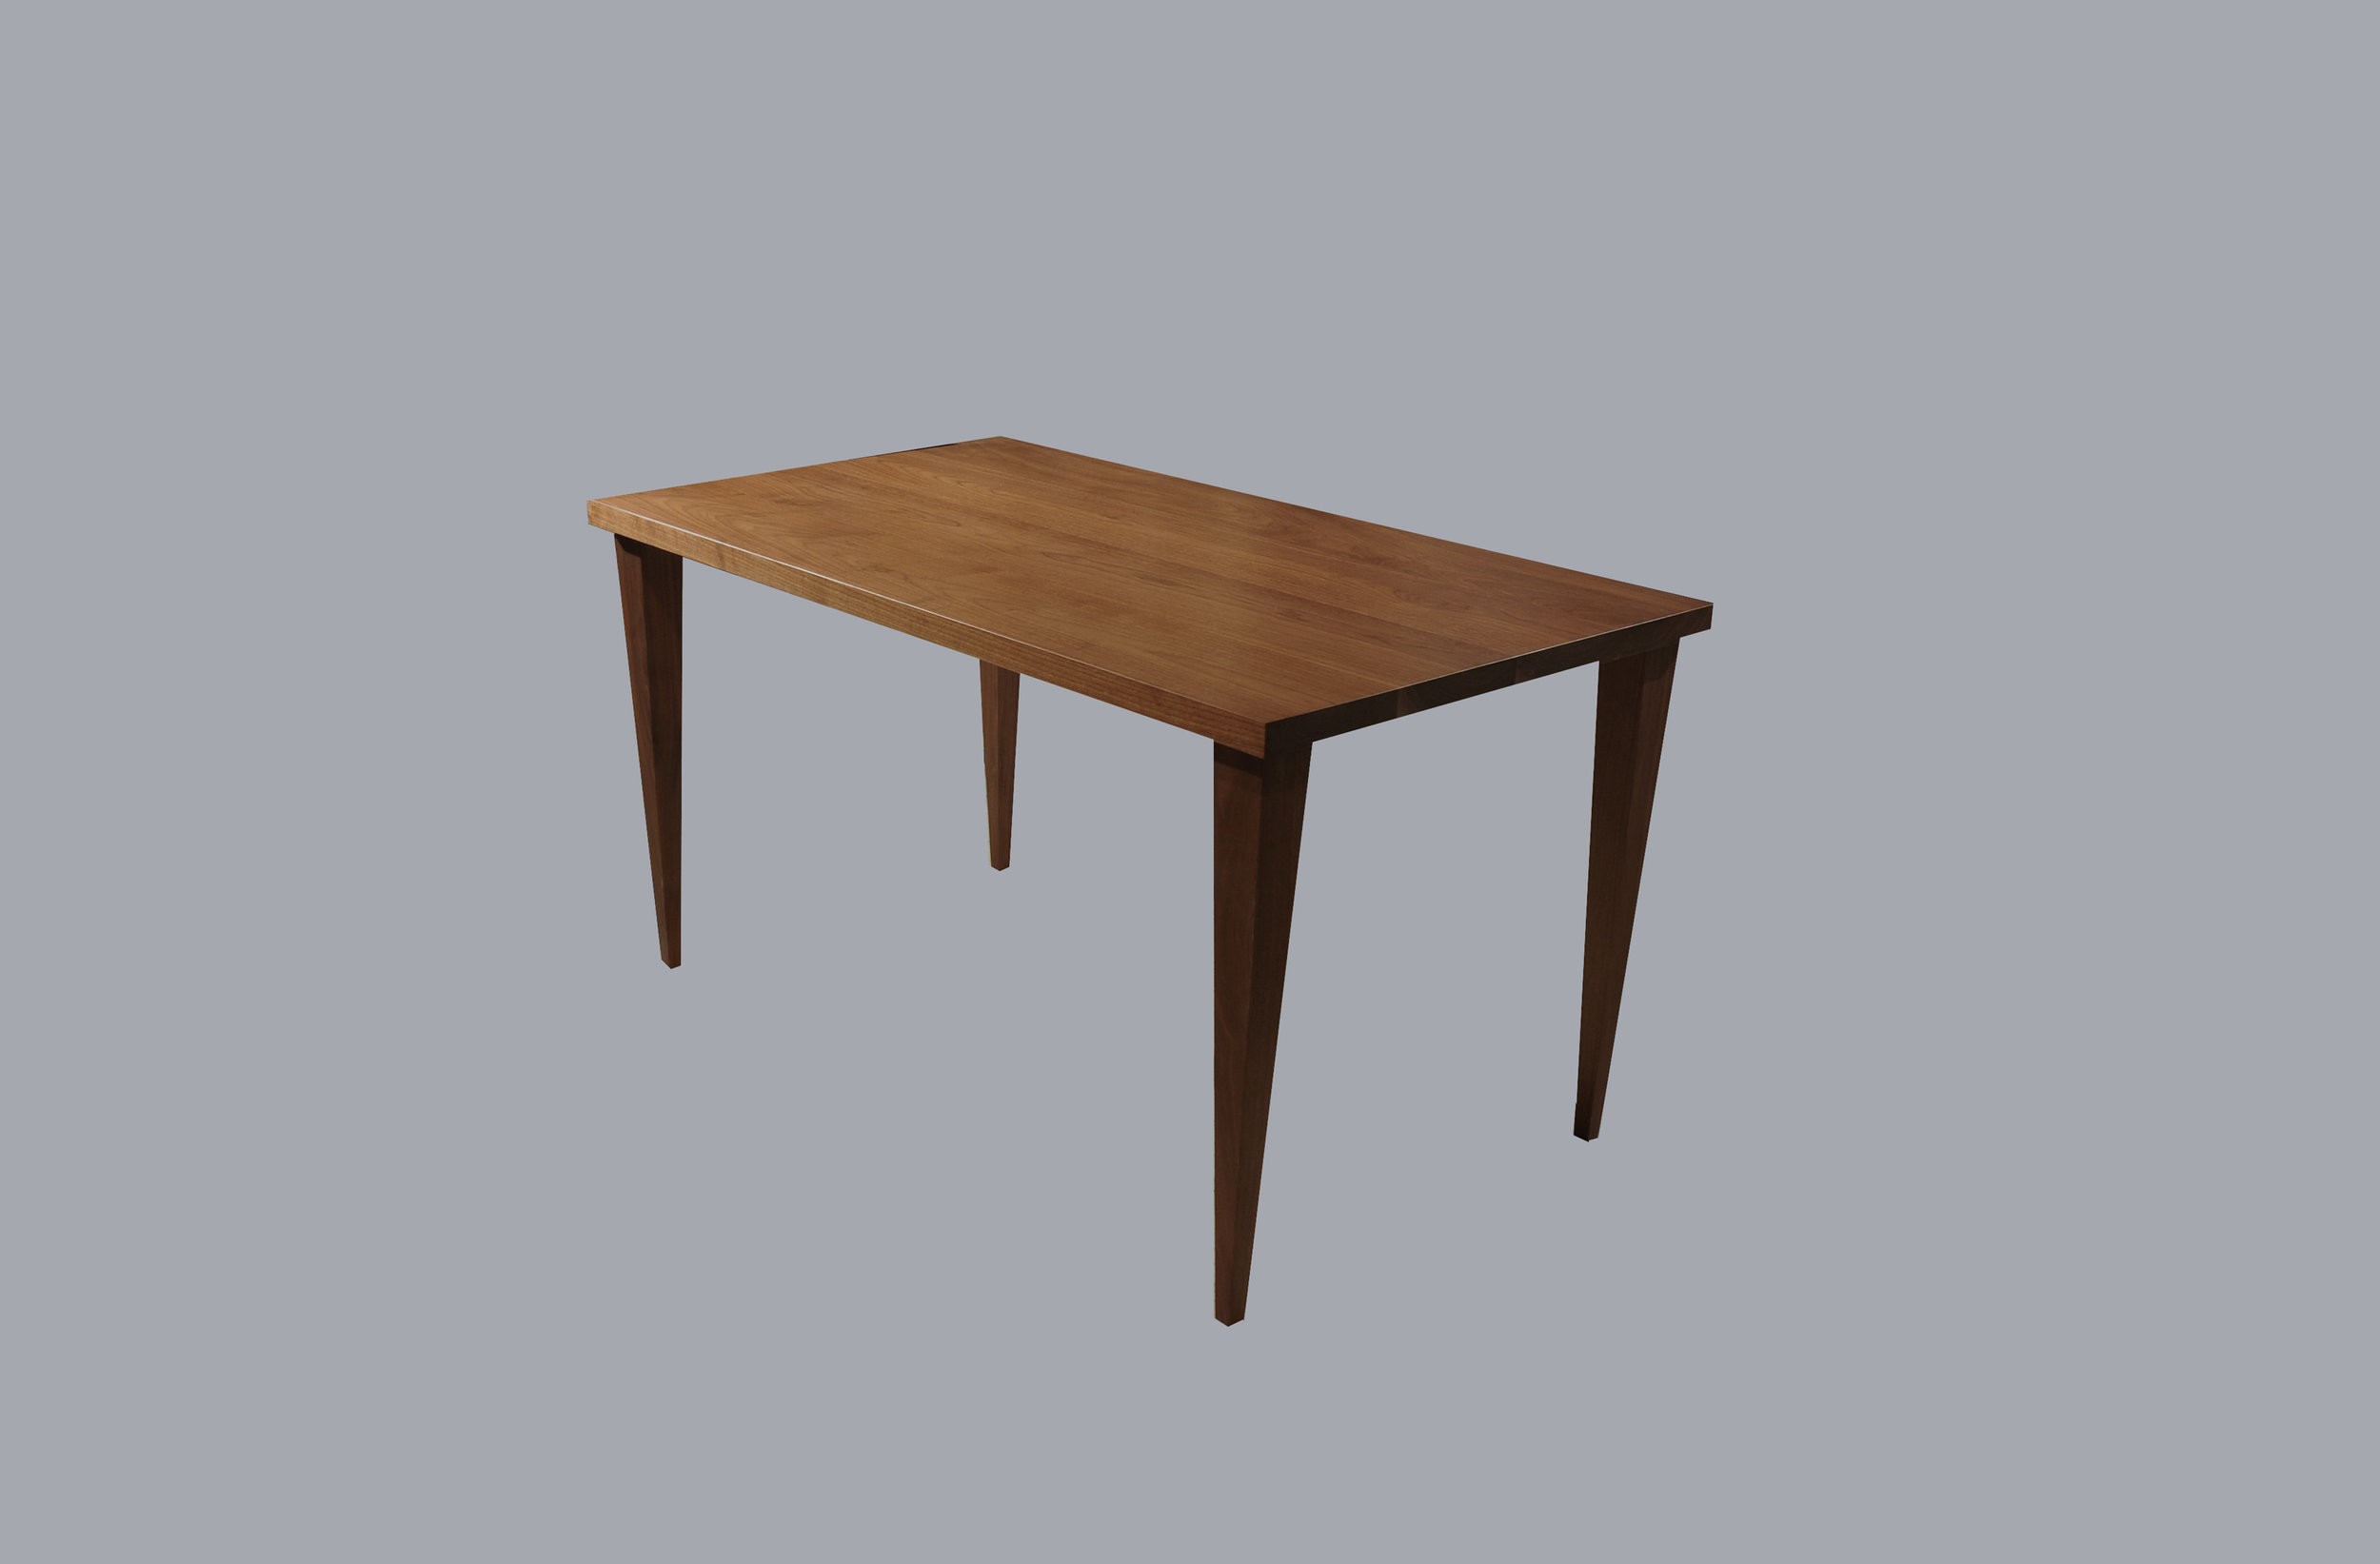 Tapered Leg Table Base